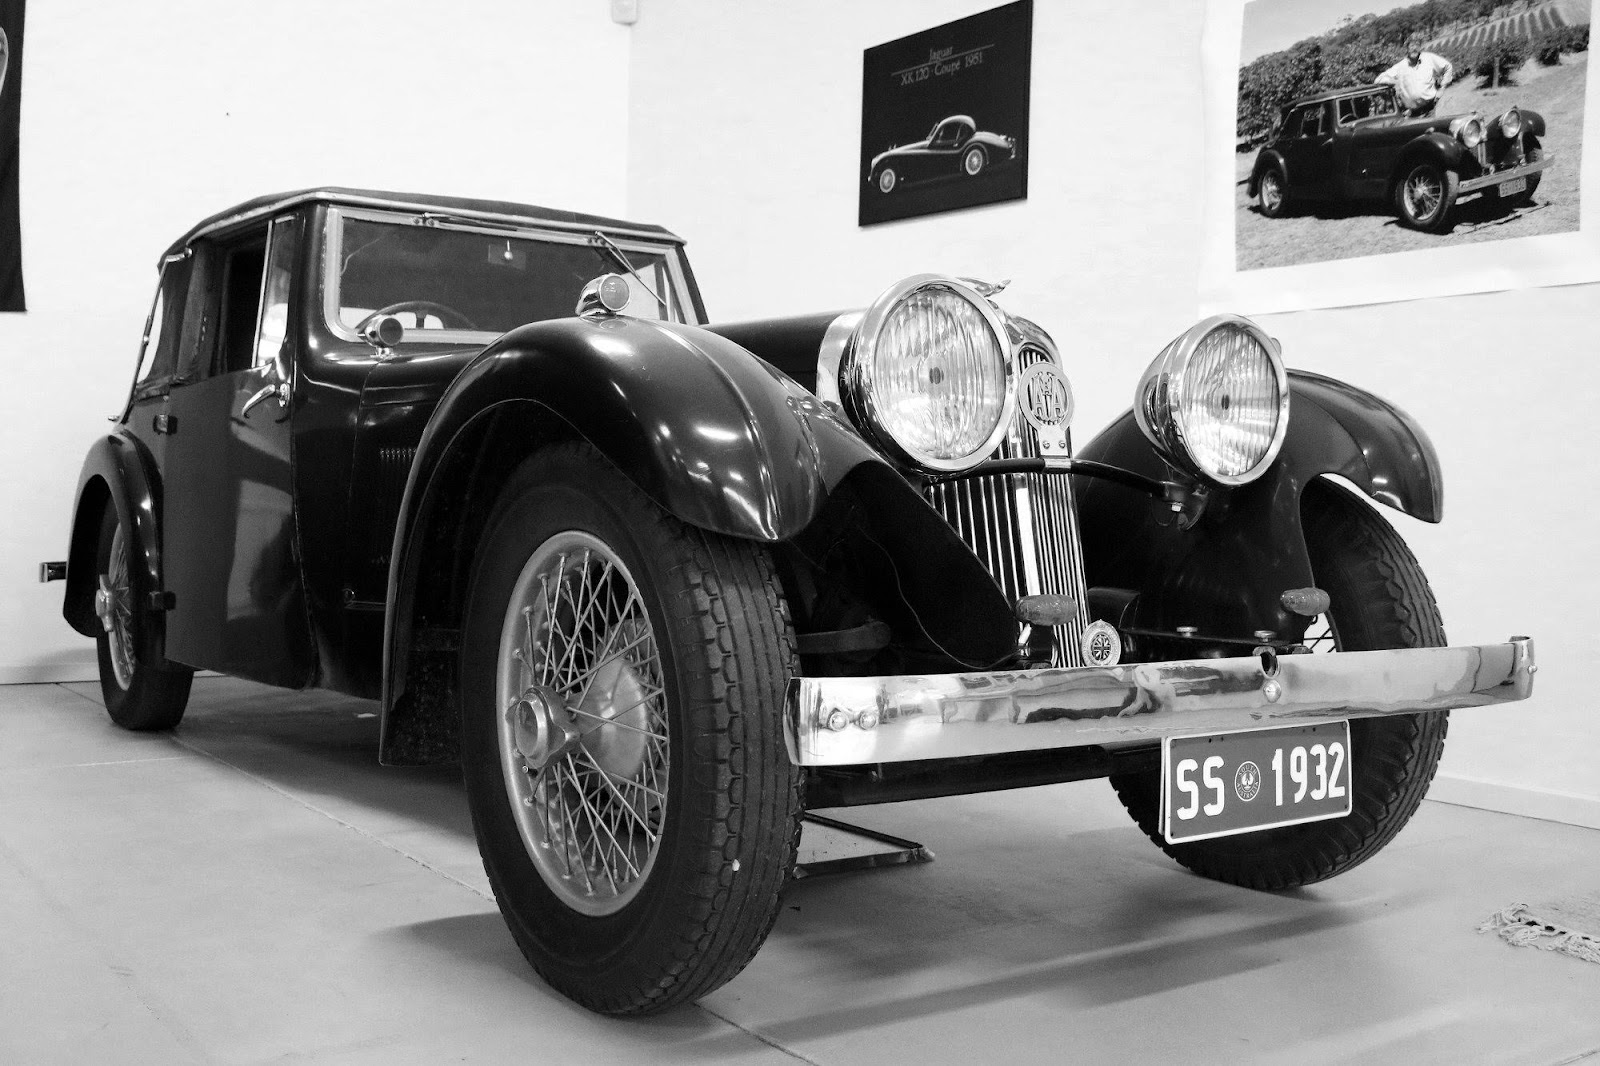 Carl_Lindner_Collection - 1932 SS1 03 B&W.jpg